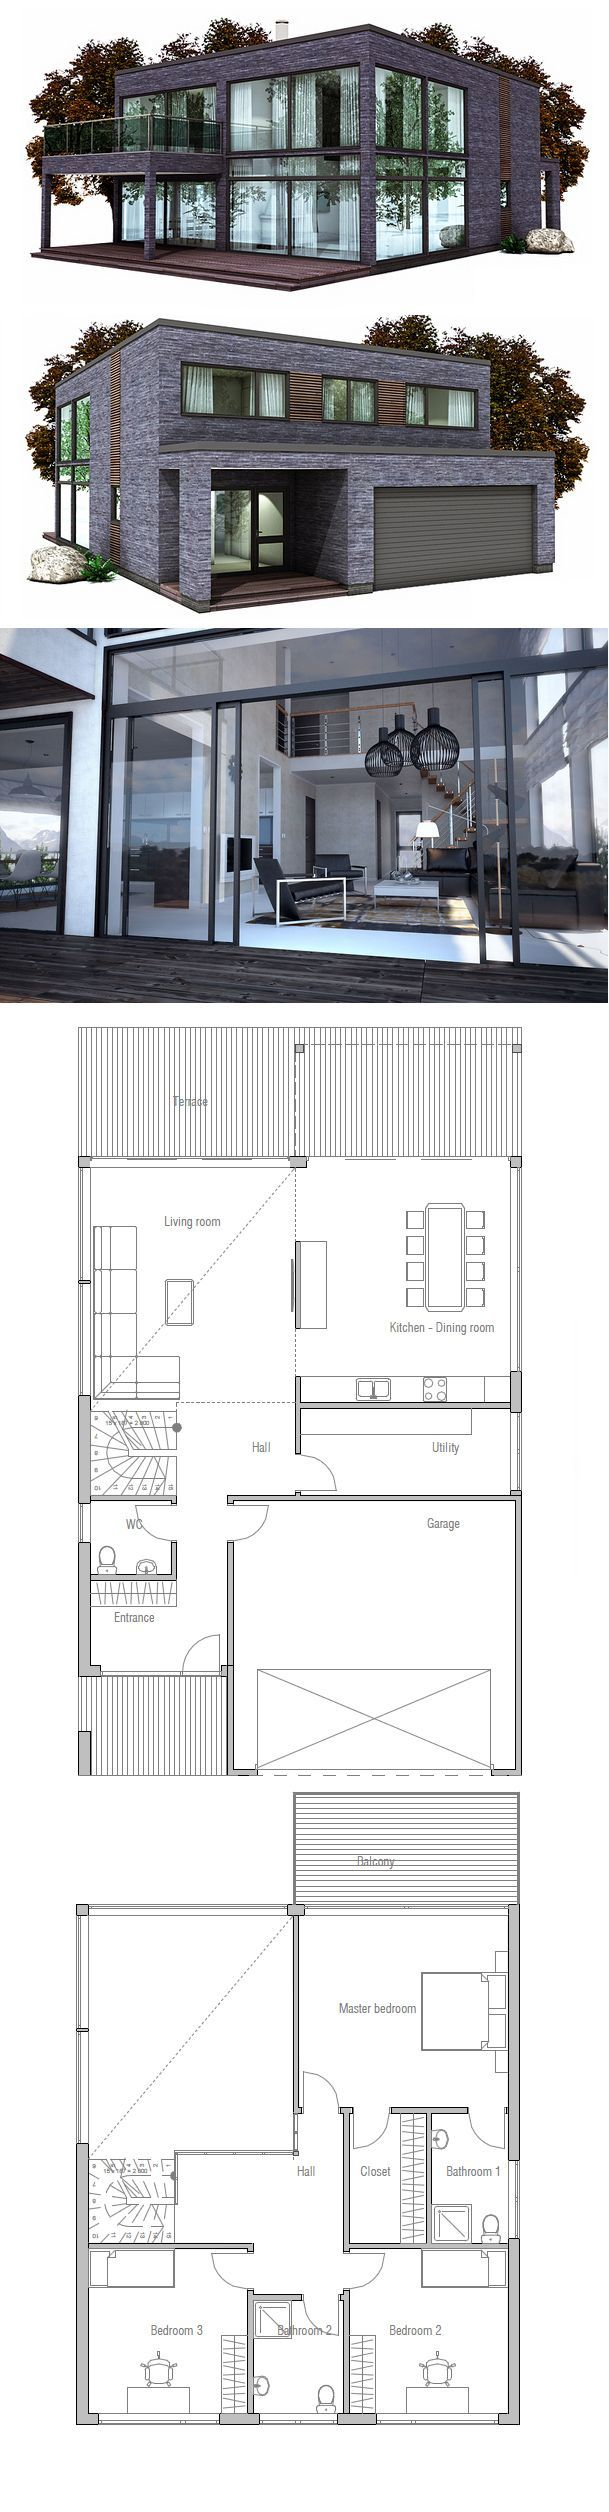 Love Me Some Box Houses With Glass As Long As I Don T Have To Clean It Home Beautiful Cool Modern De Container House Plans Beach House Plans House Plans